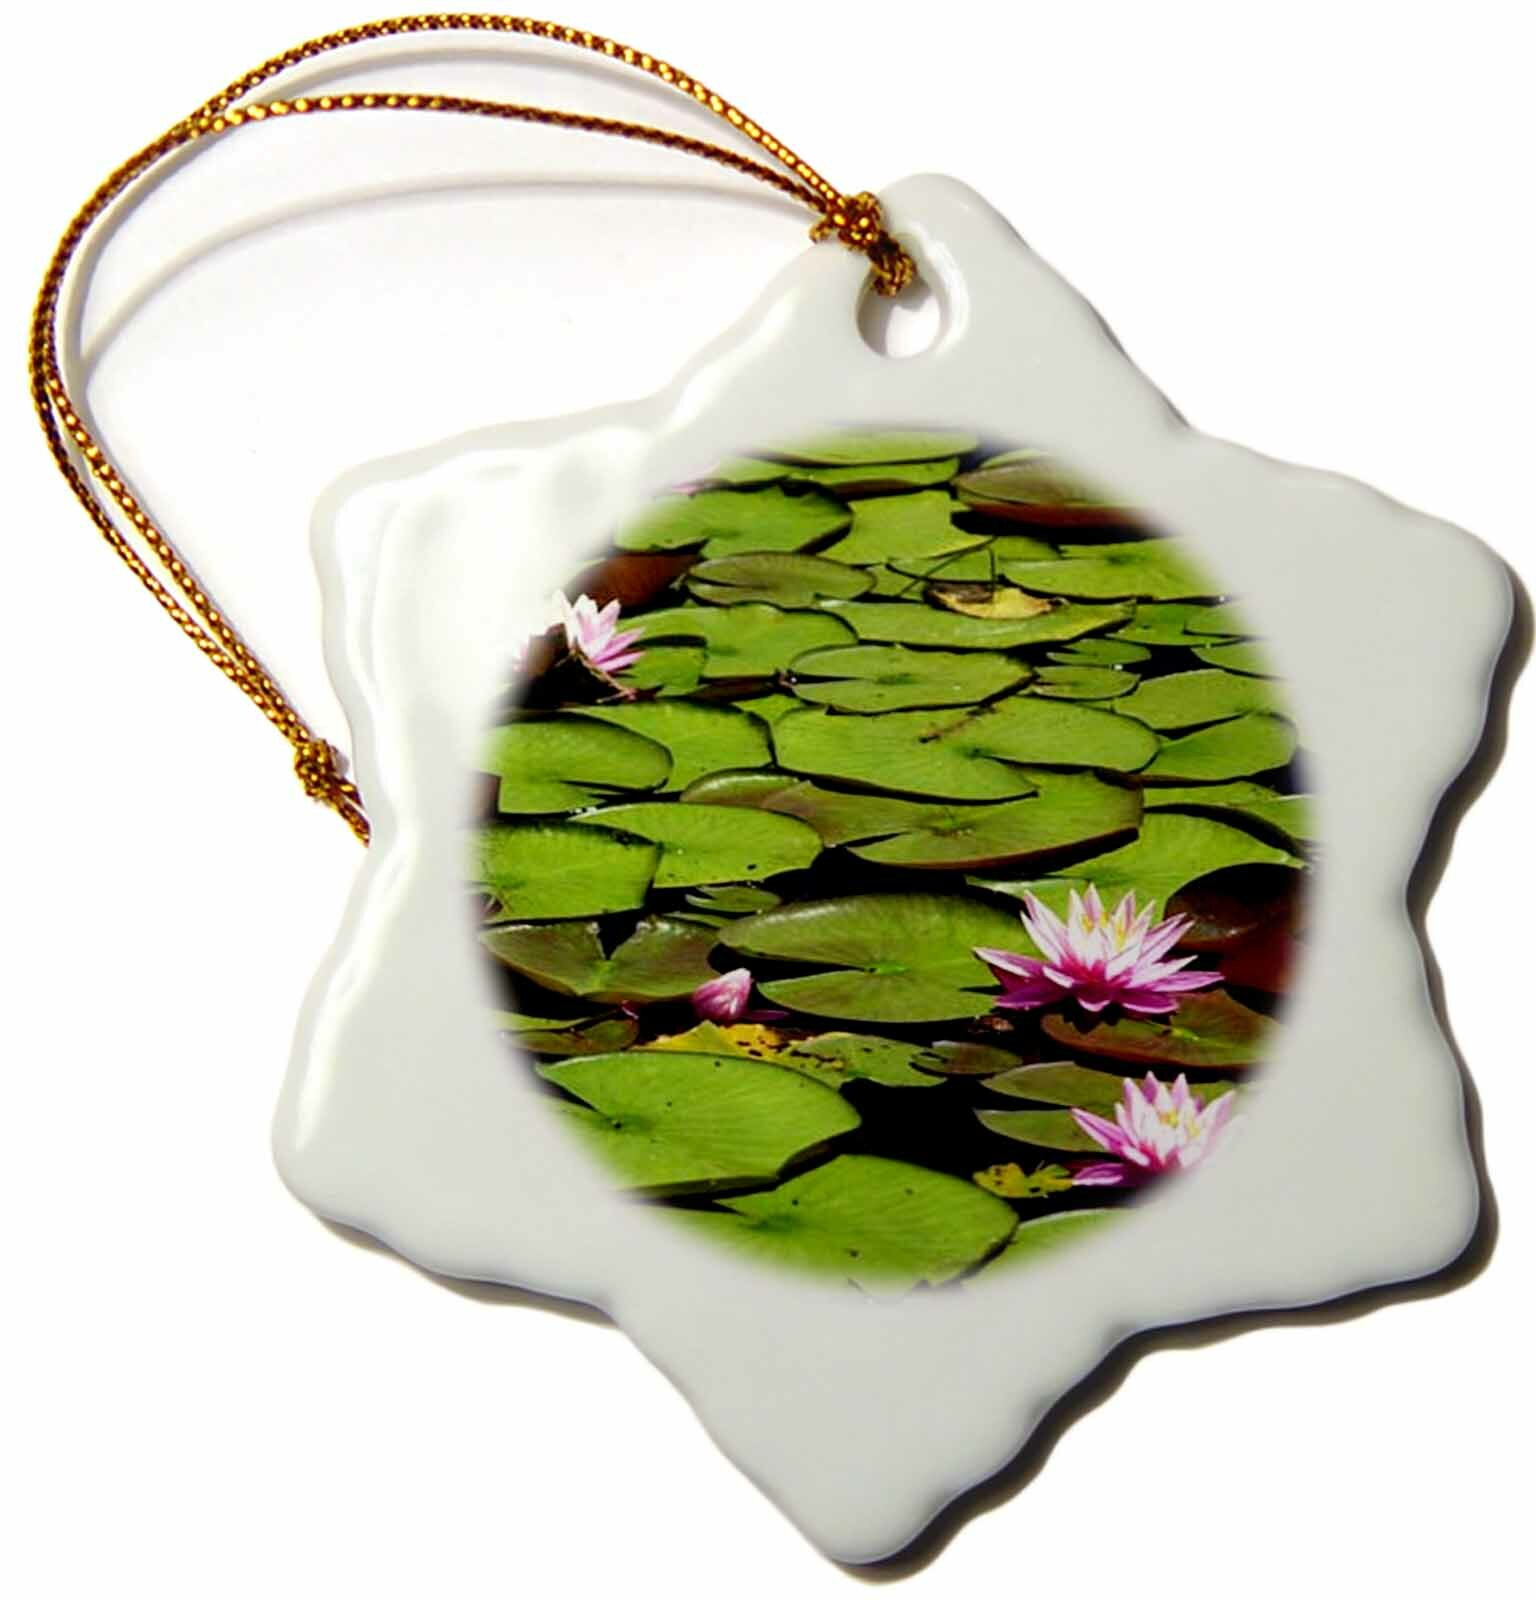 The Holiday Aisle Lily Pads Holiday Shaped Ornament Wayfair